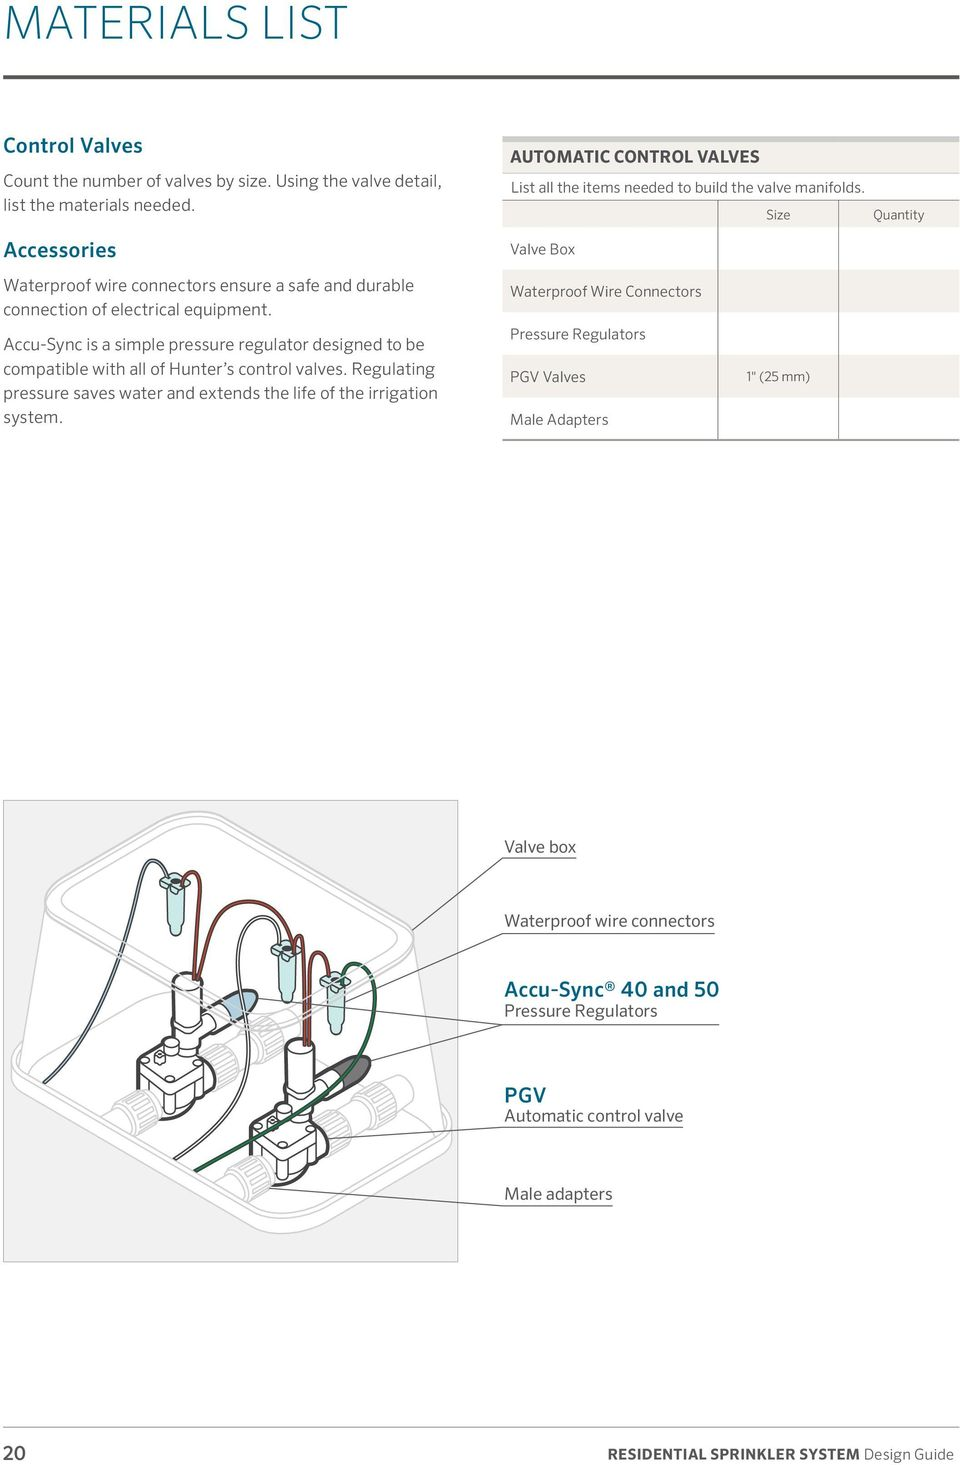 Residential Sprinkler System Pdf Irrigation Wiring Diagram Size Valve Box Quantity Waterproof Wire Connectors Ensure A Safe And Durable Connection Of Electrical Equipment